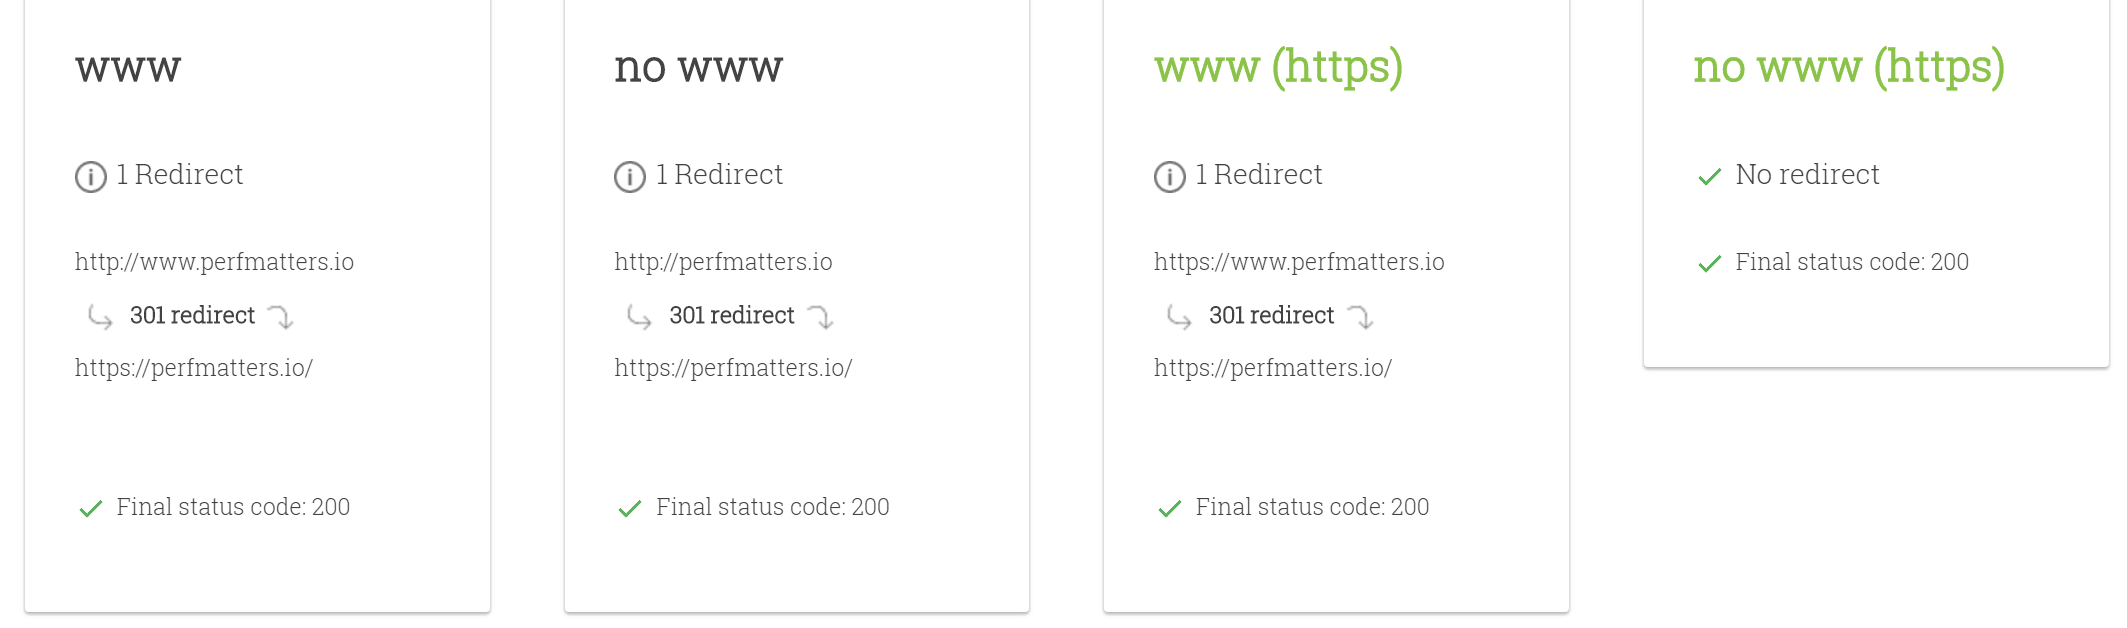 Correct ingestelde redirects